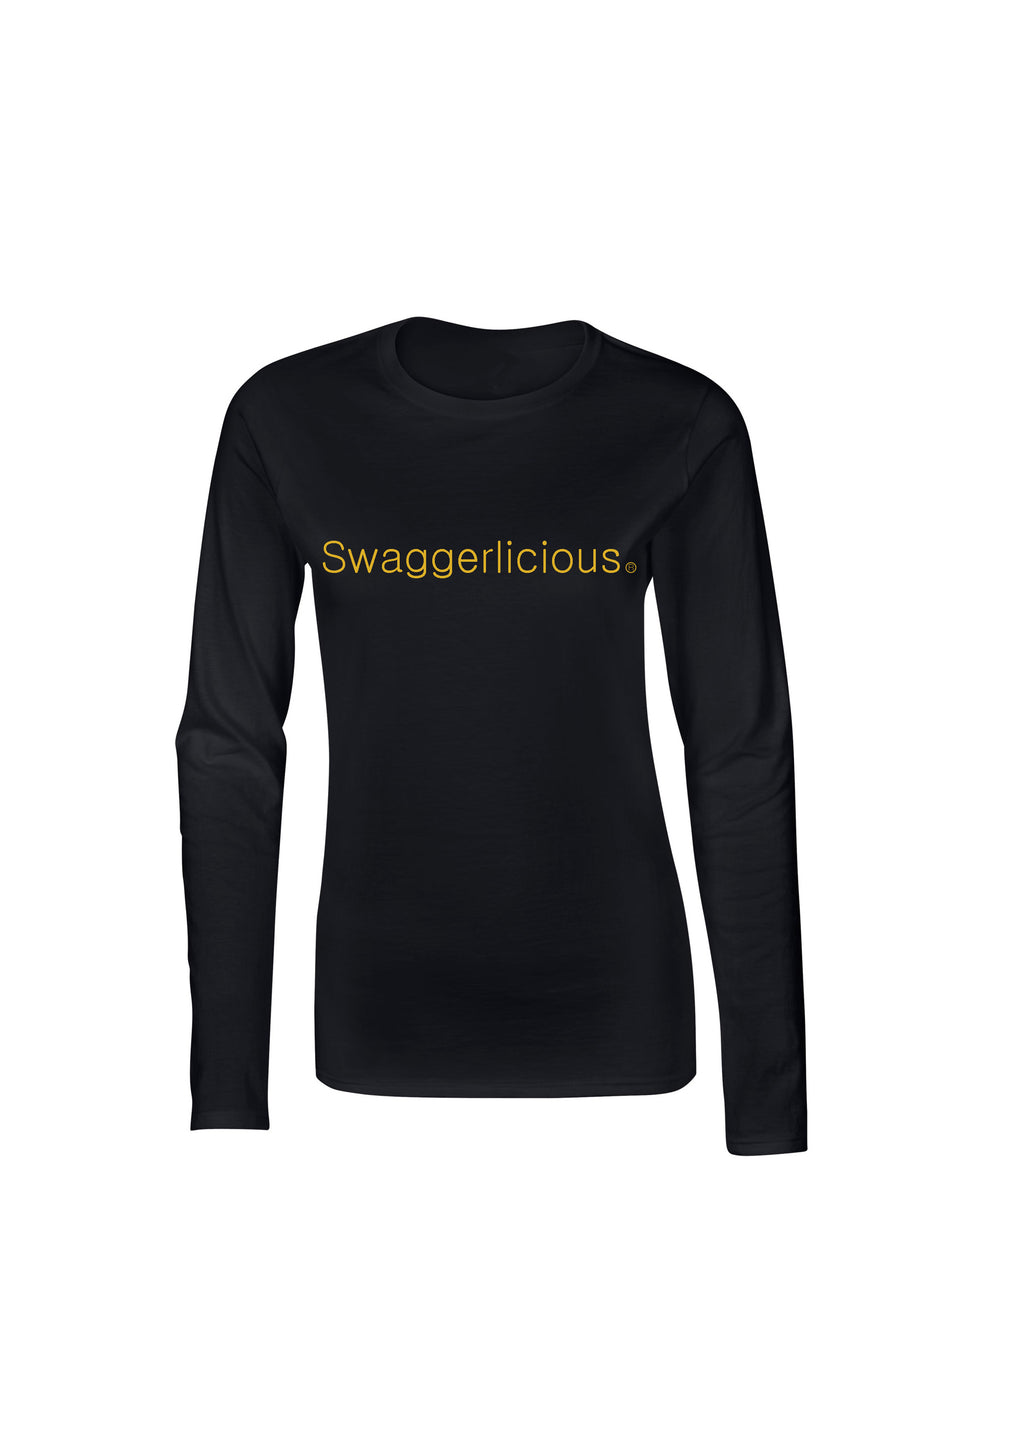 Swaggerlicious Black Ladies Long Sleeve Top - swaggerlicious-clothing.com